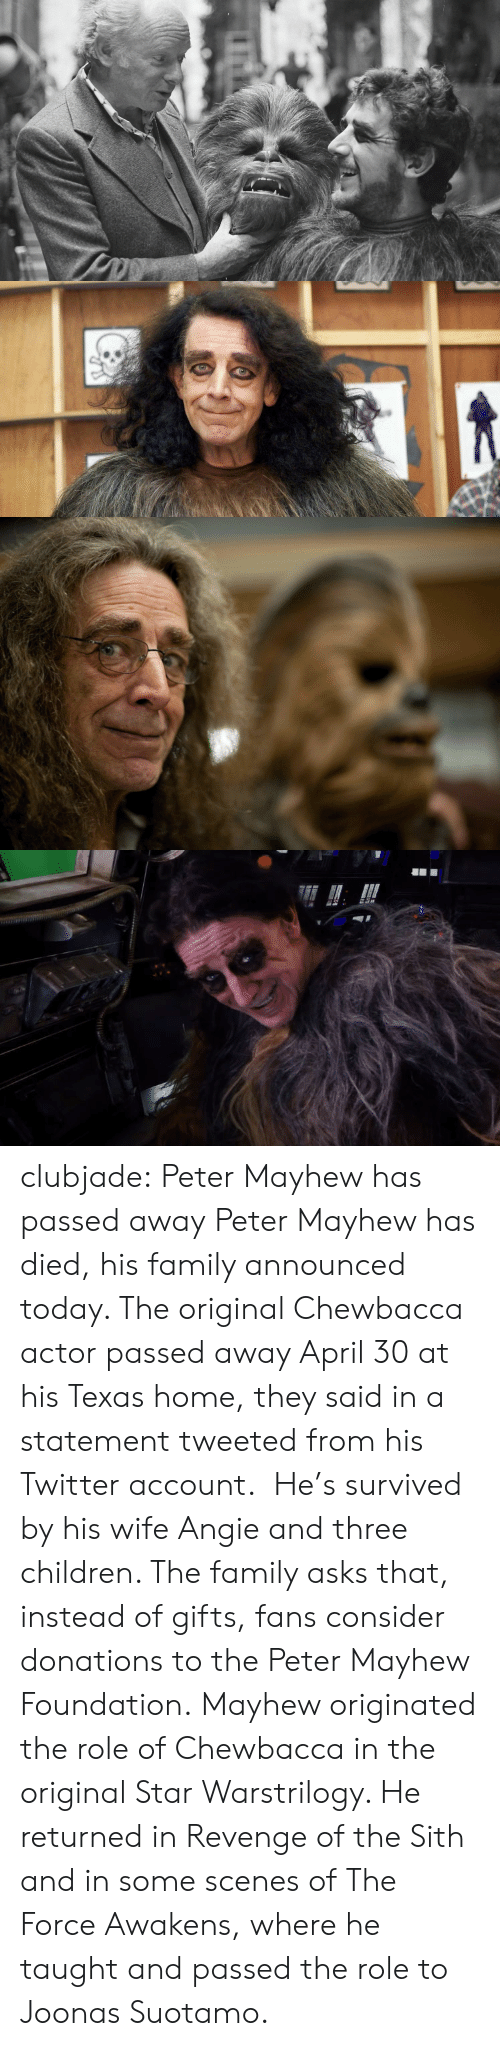 The Sith: clubjade:  Peter Mayhew has passed away Peter Mayhew has died, his family announced today. The original Chewbacca actor passed away April 30 at his Texas home, they said in a statement tweeted from his Twitter account.  He's survived by his wife Angie and three children. The family asks that, instead of gifts, fans consider donations to the Peter Mayhew Foundation. Mayhew originated the role of Chewbacca in the original Star Warstrilogy. He returned in Revenge of the Sith and in some scenes of The Force Awakens, where he taught and passed the role to Joonas Suotamo.